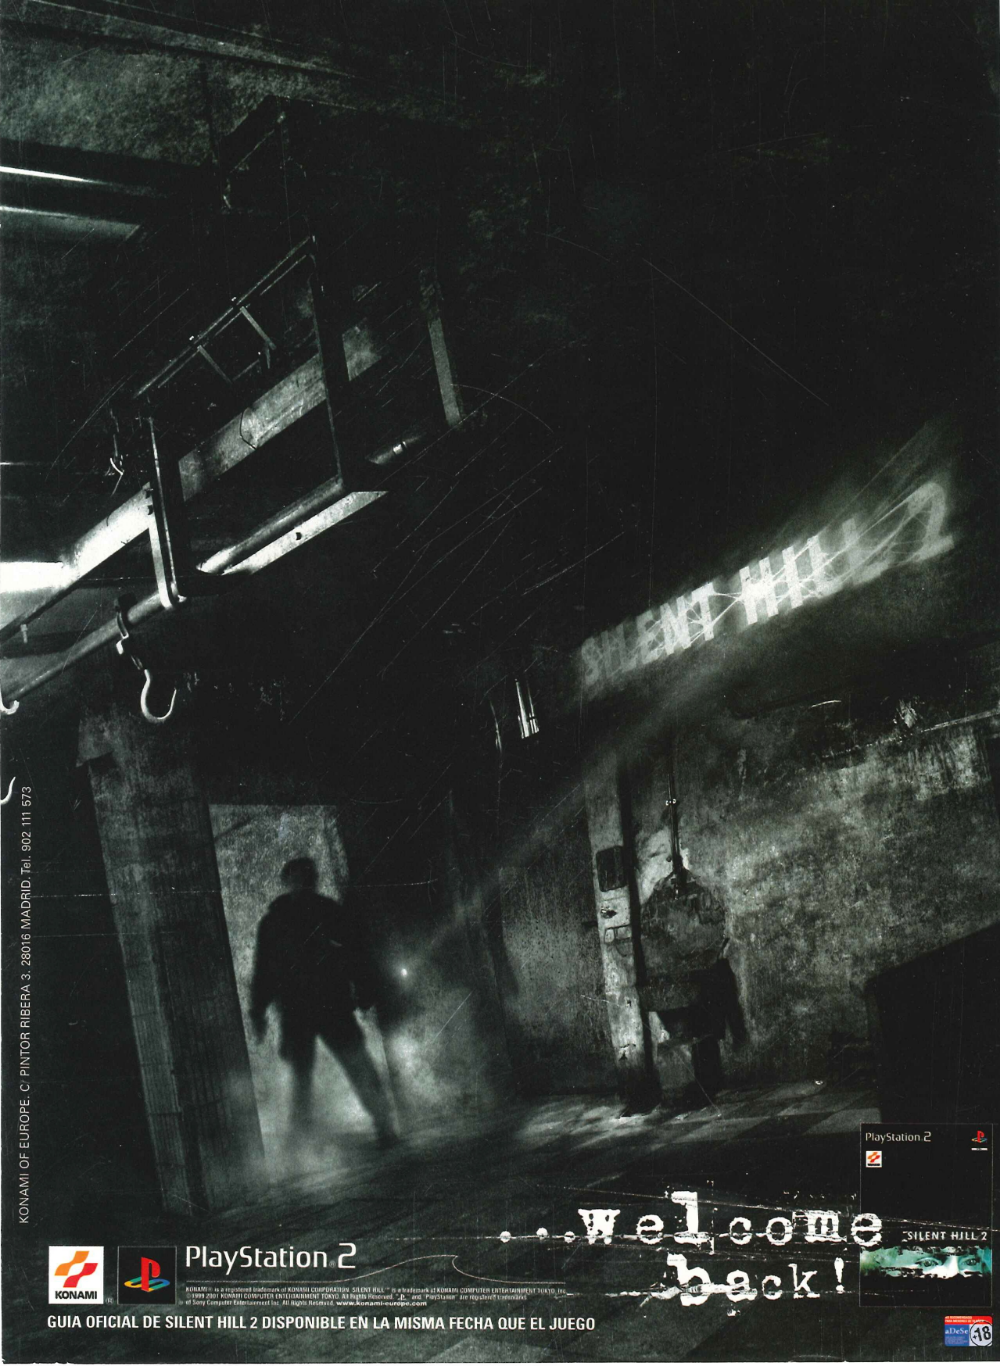 Silent Hill 2 Special 2 Disc Set Pal Spanish Advert Silent Hill 2 Silent Hill Photo Dump